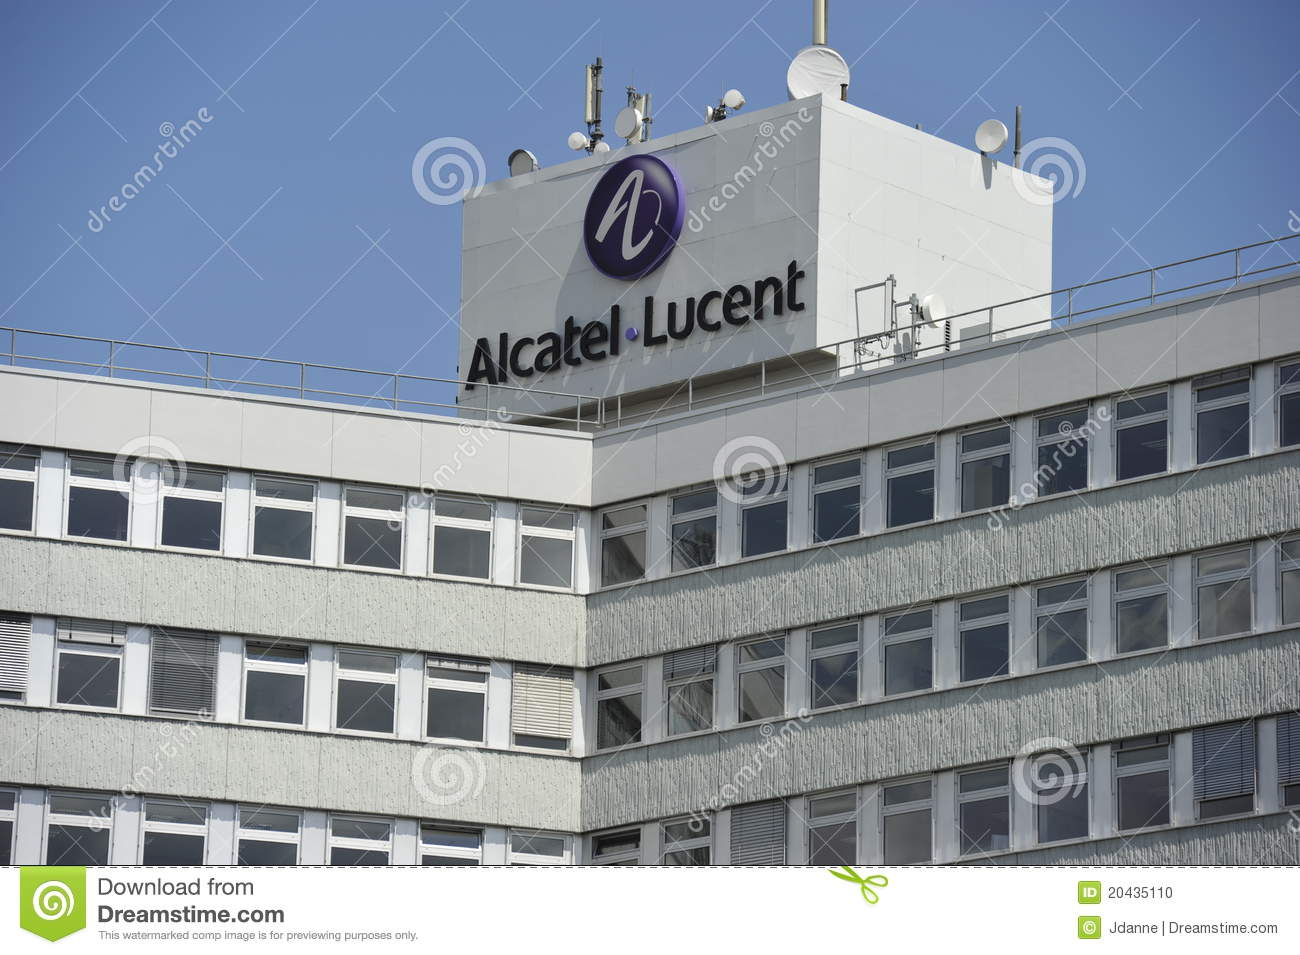 Alcatel-Lucent Alemania, Stuttgart